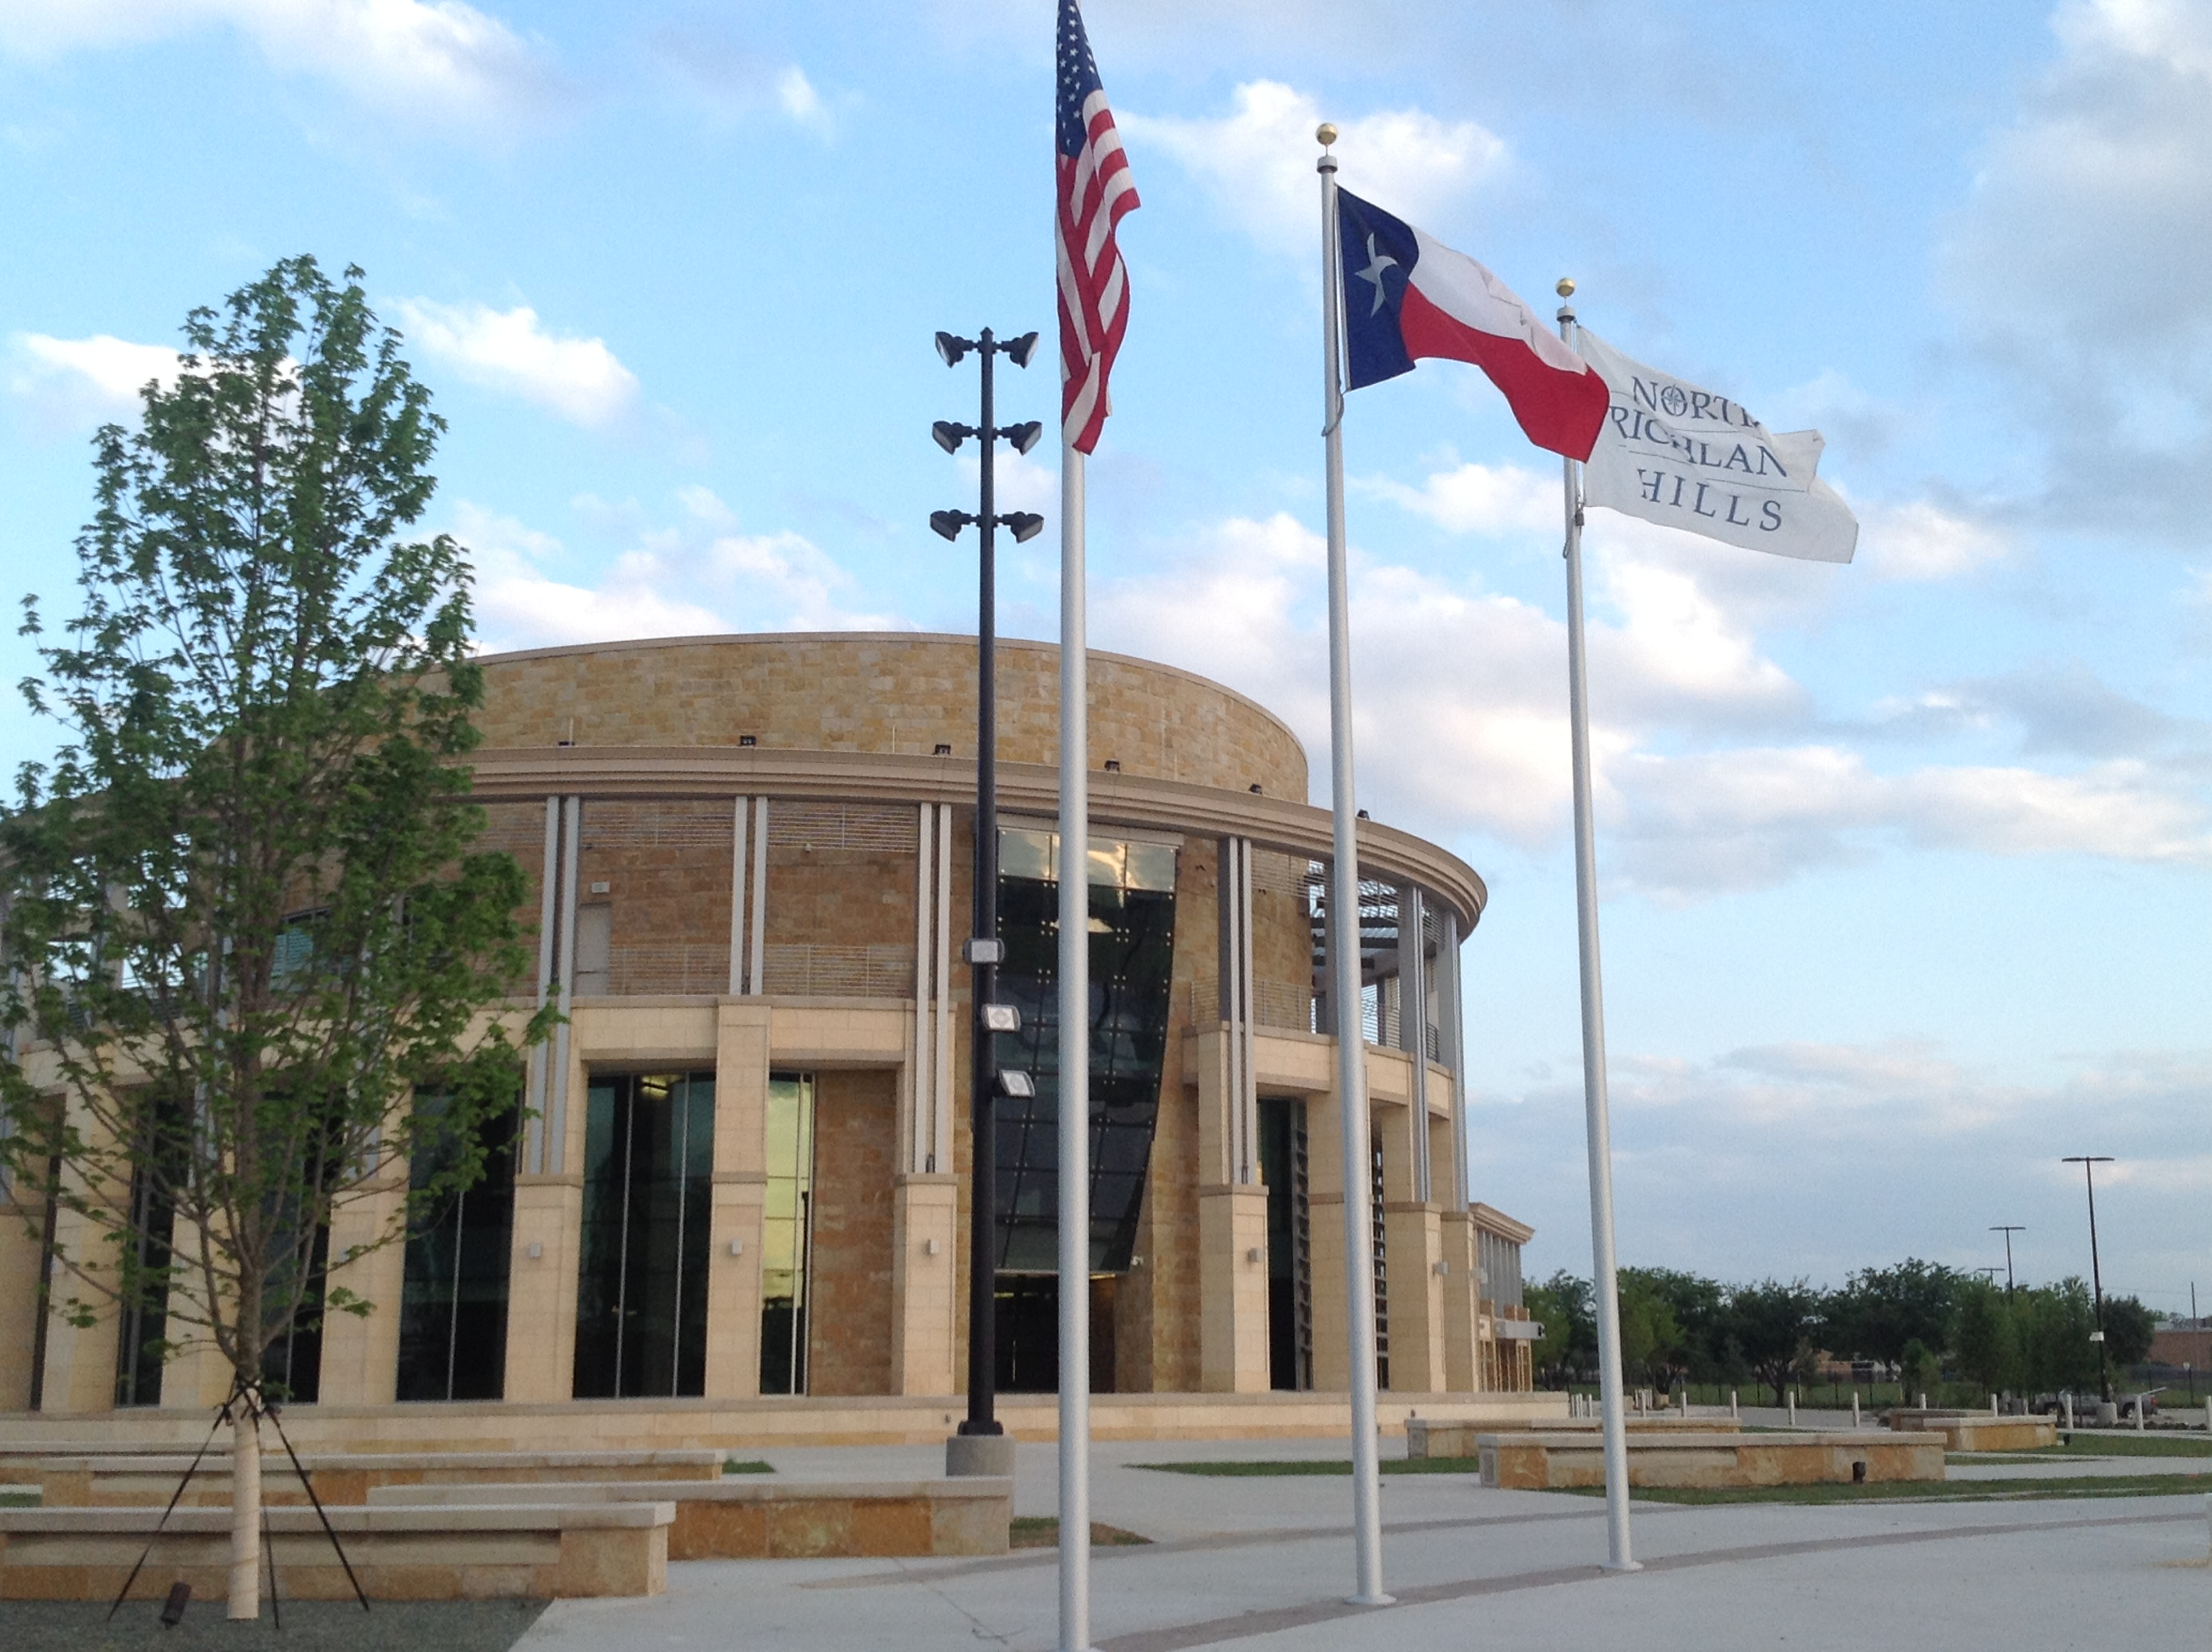 North Richland Hills Tx City Council Meeting - Year of Clean